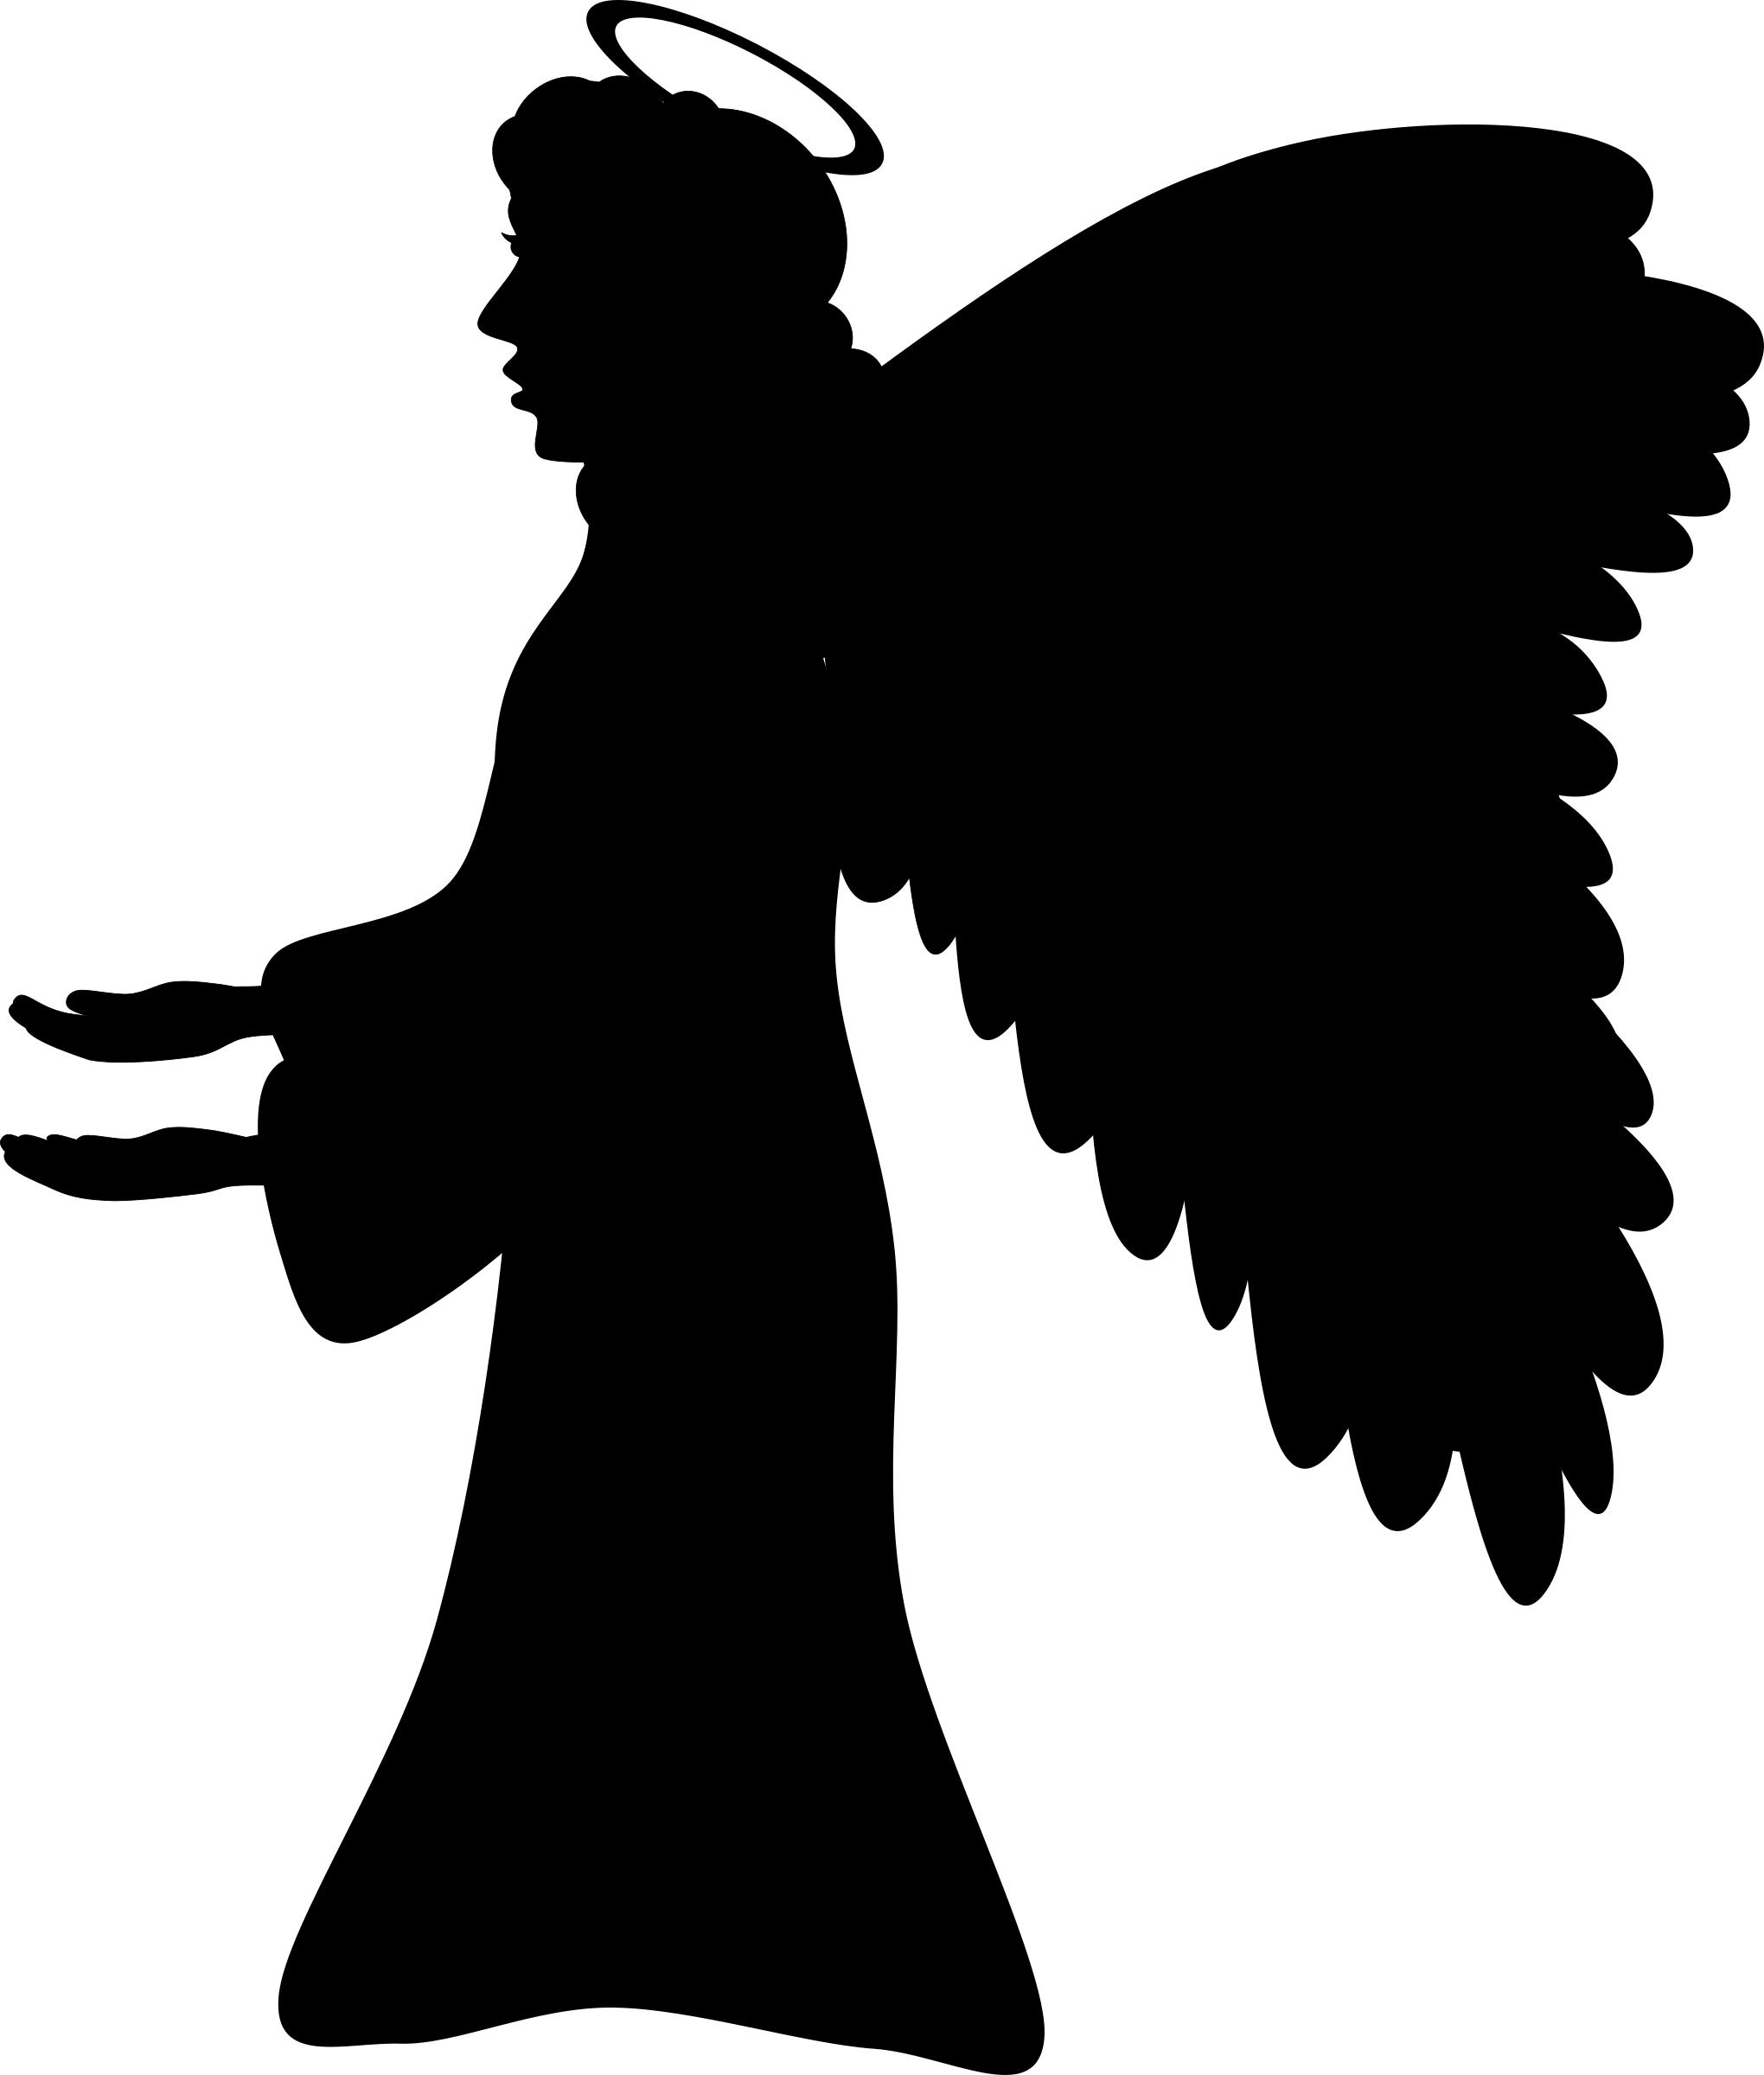 angel silhouette clip art free at getdrawings com free for rh getdrawings com angel clipart free black and white angel clip art images free